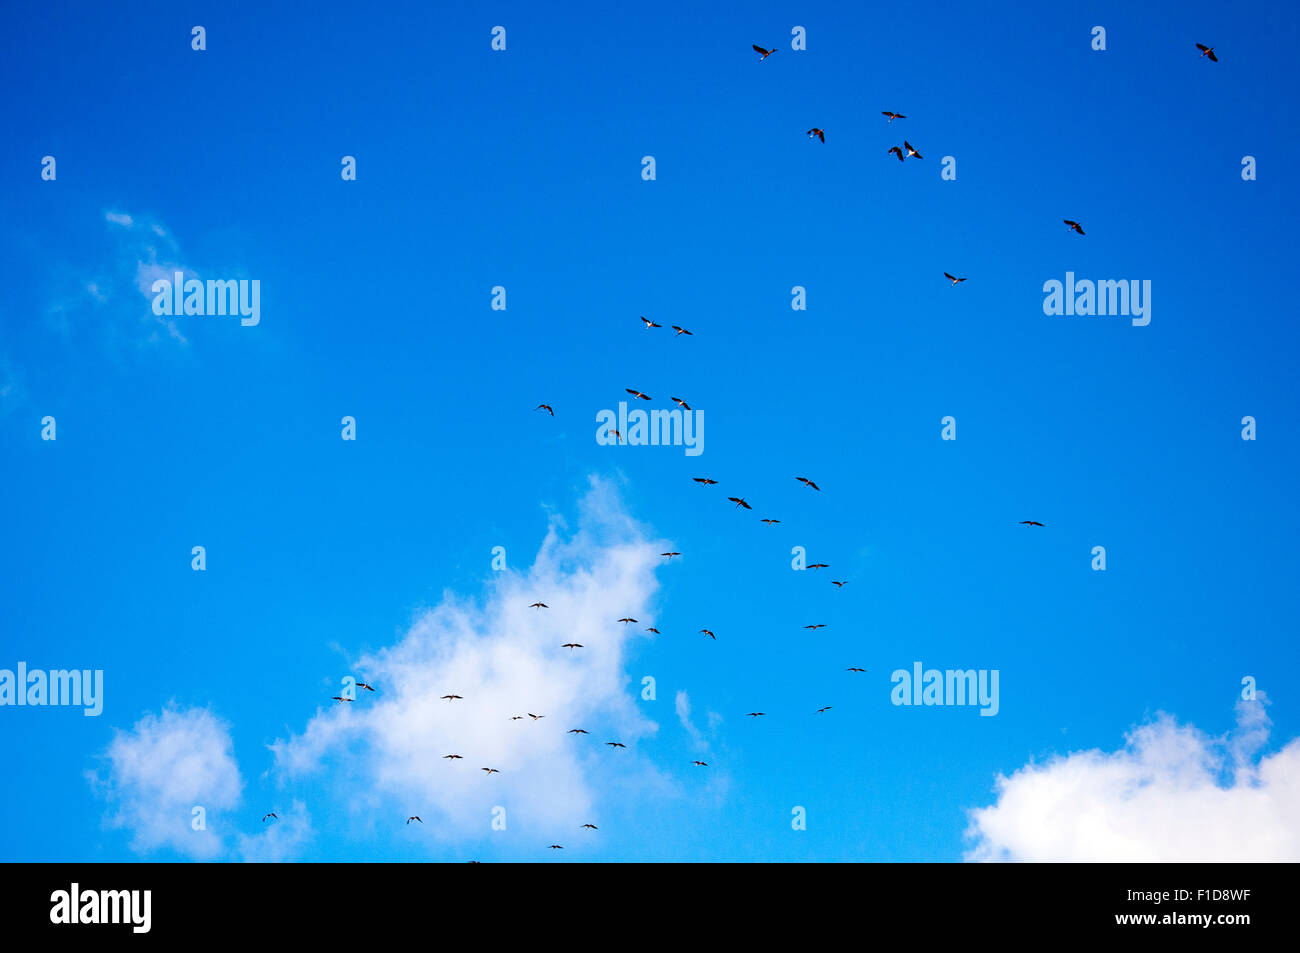 Sky background. Sky,clouds and birds background. - Stock Image